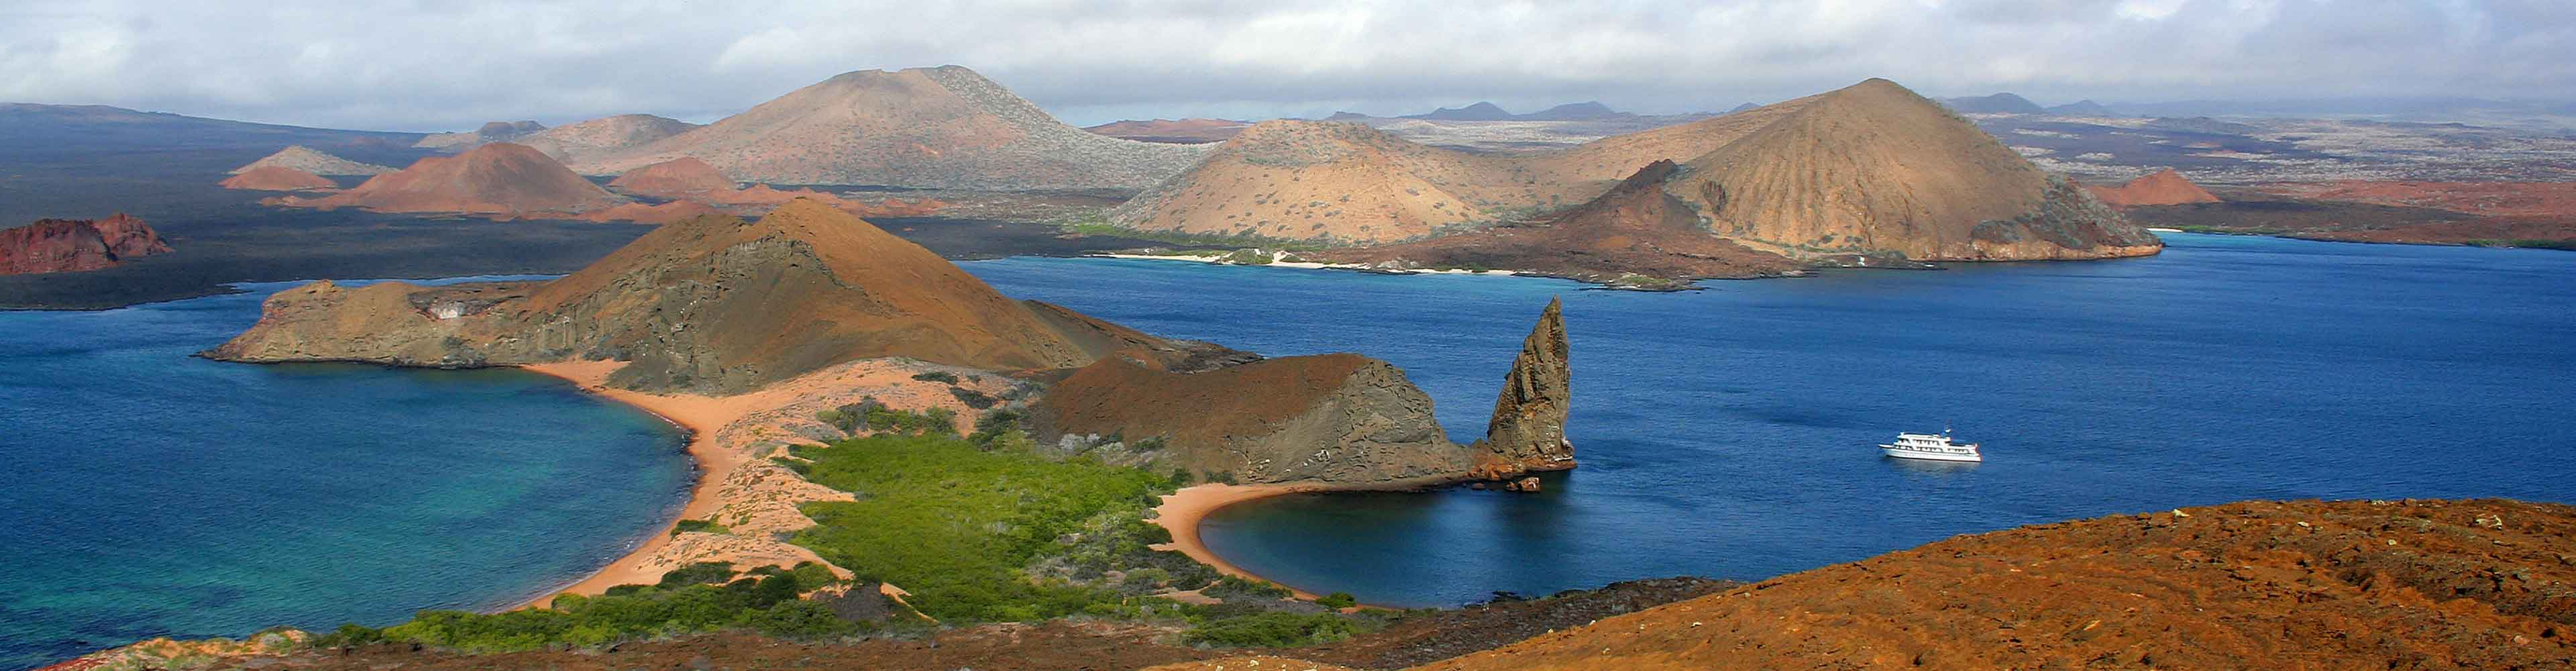 Classic Galapagos – South Eastern Islands (Grand Queen Beatriz)